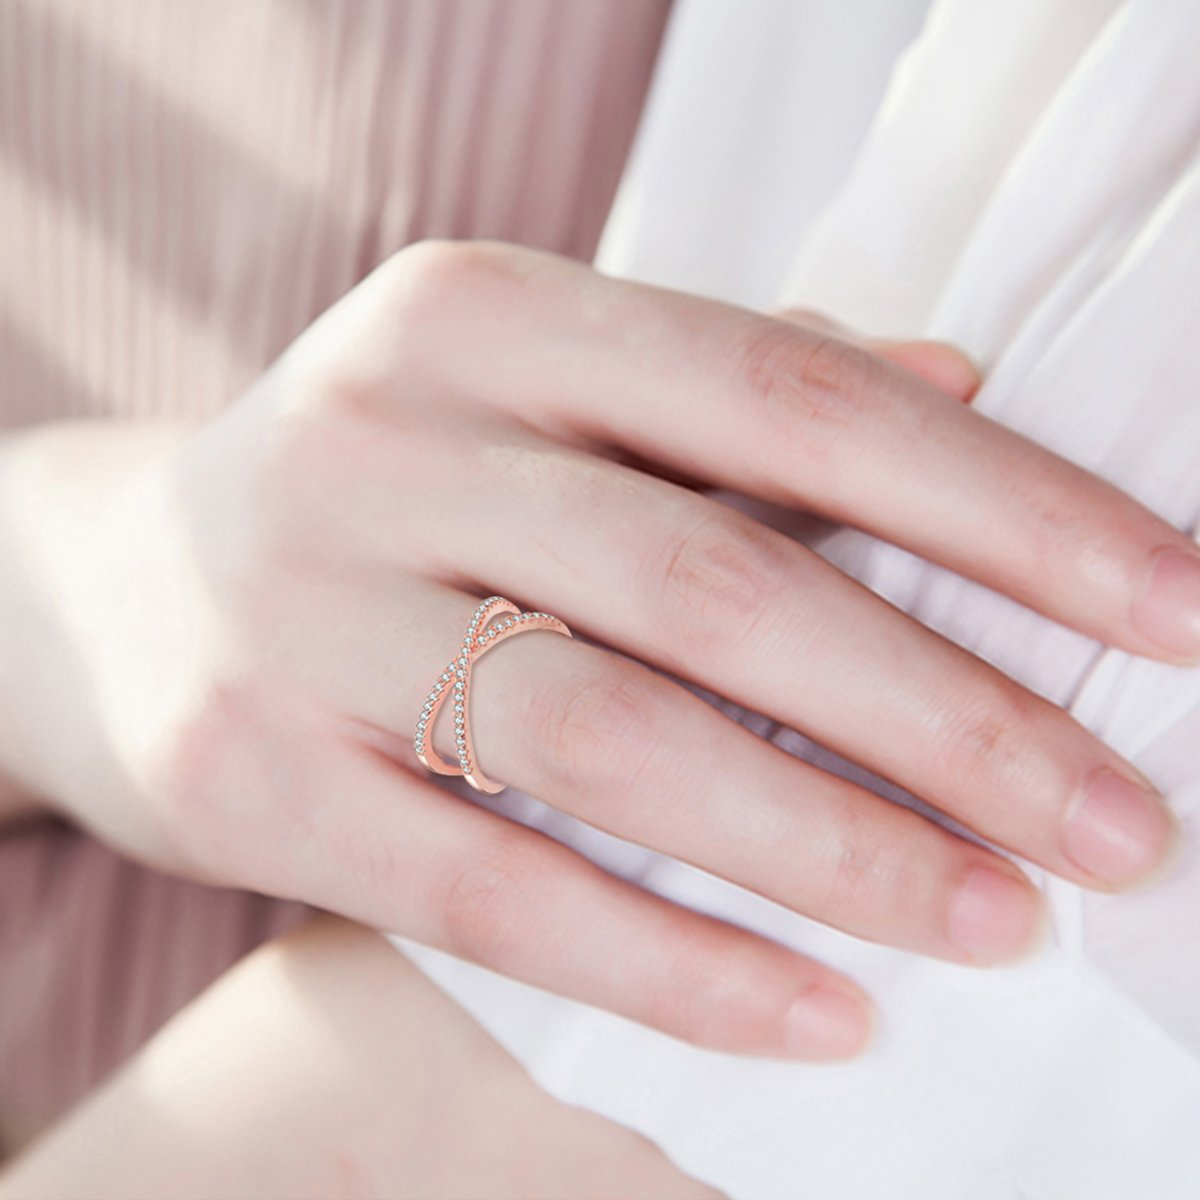 X Ring Sterling Silver, Cubic Zirconia X Criss Cross Ring Women, Size 6-8 (Rose-Gold-Plated-Silver, 7) by SISGEM (Image #3)